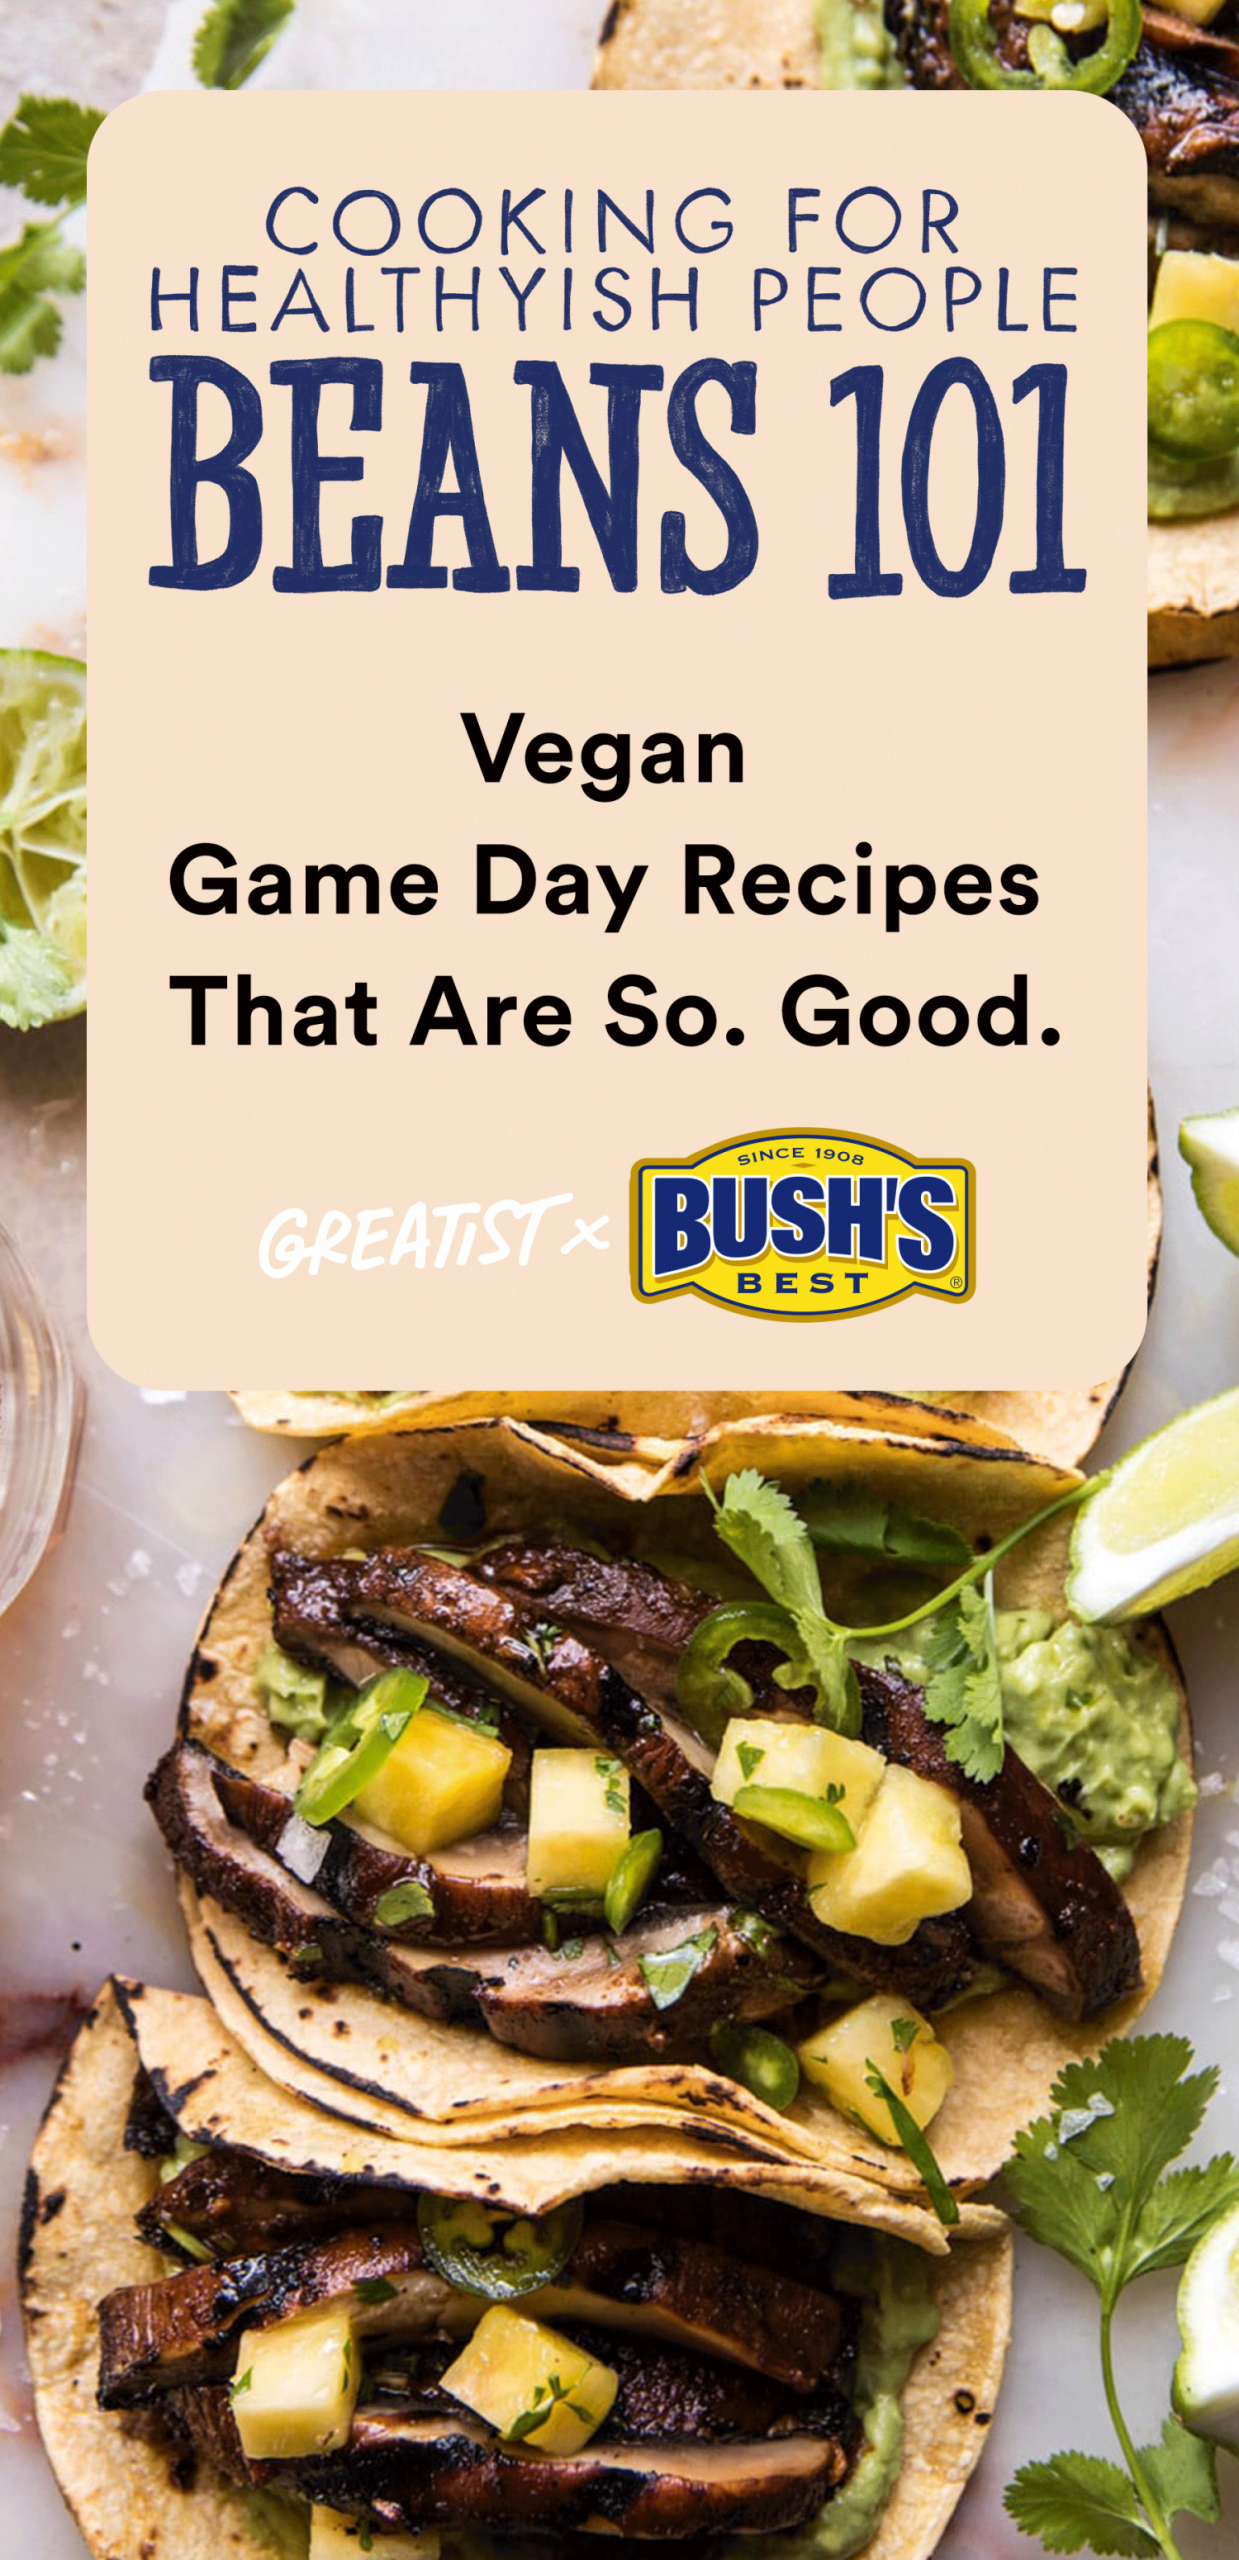 Vegetarian Game Day Recipes  7 Vegan Game Day Recipes That Are So Good